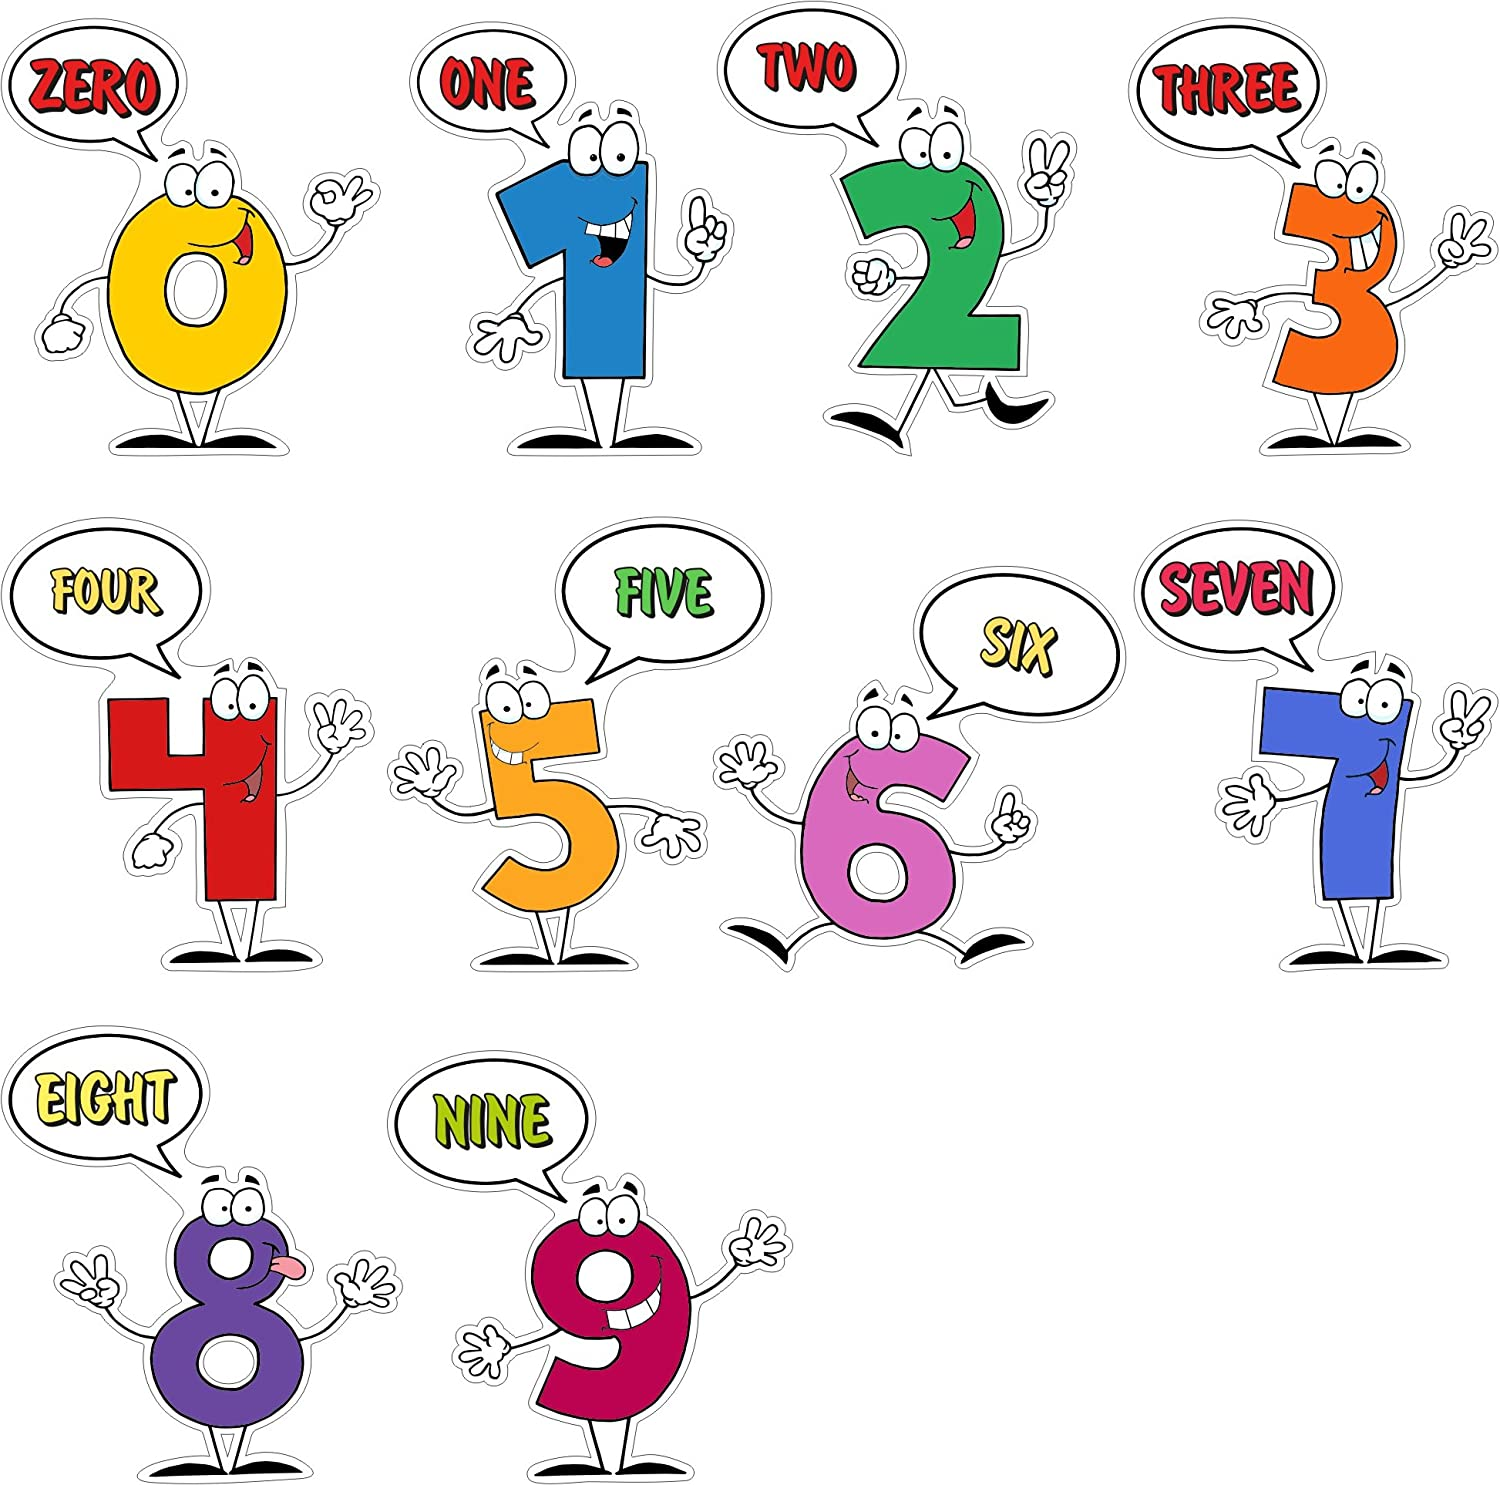 Educational Wall Stickers - Digits 0 to 9 Set of 10 Vinyl Wall Decals - Colourful Learning Tool for Kids and Pupils - Wallpaper Decoration for Nursery, Kindergarten or Classroom Vacom Advertising N1054